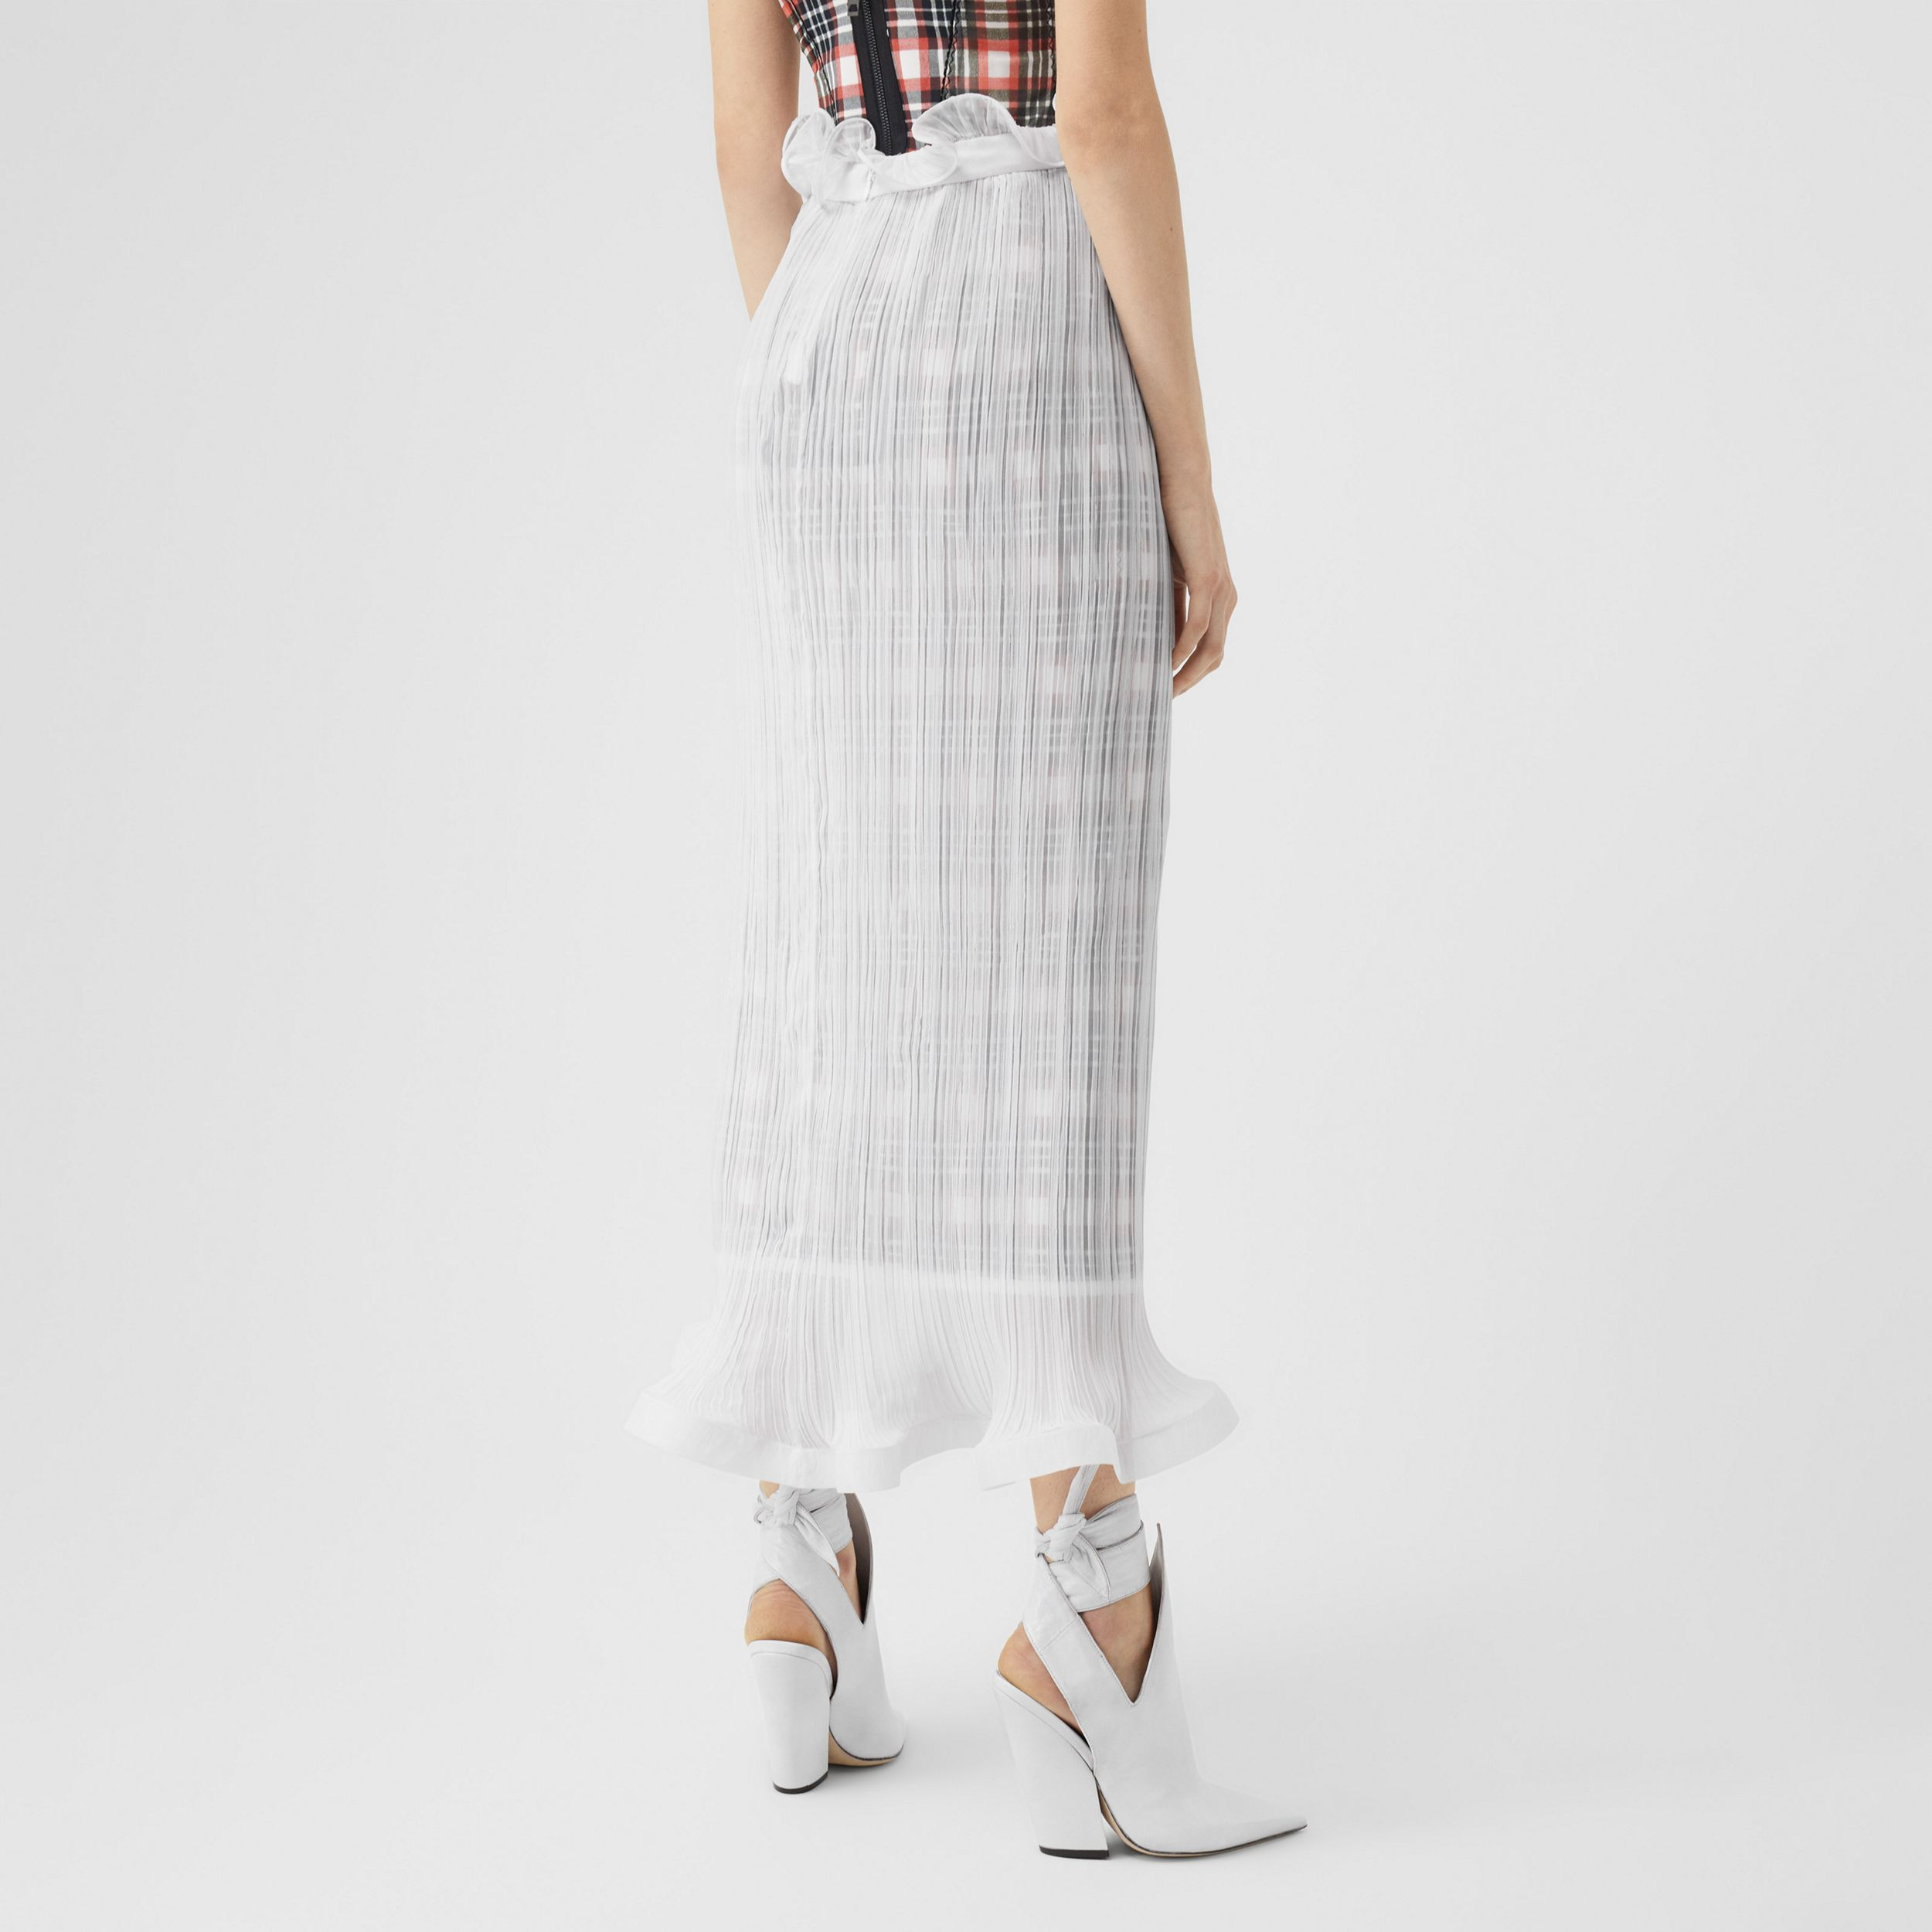 Ruffle Detail Chiffon Plissé Skirt in Optic White - Women | Burberry - 2